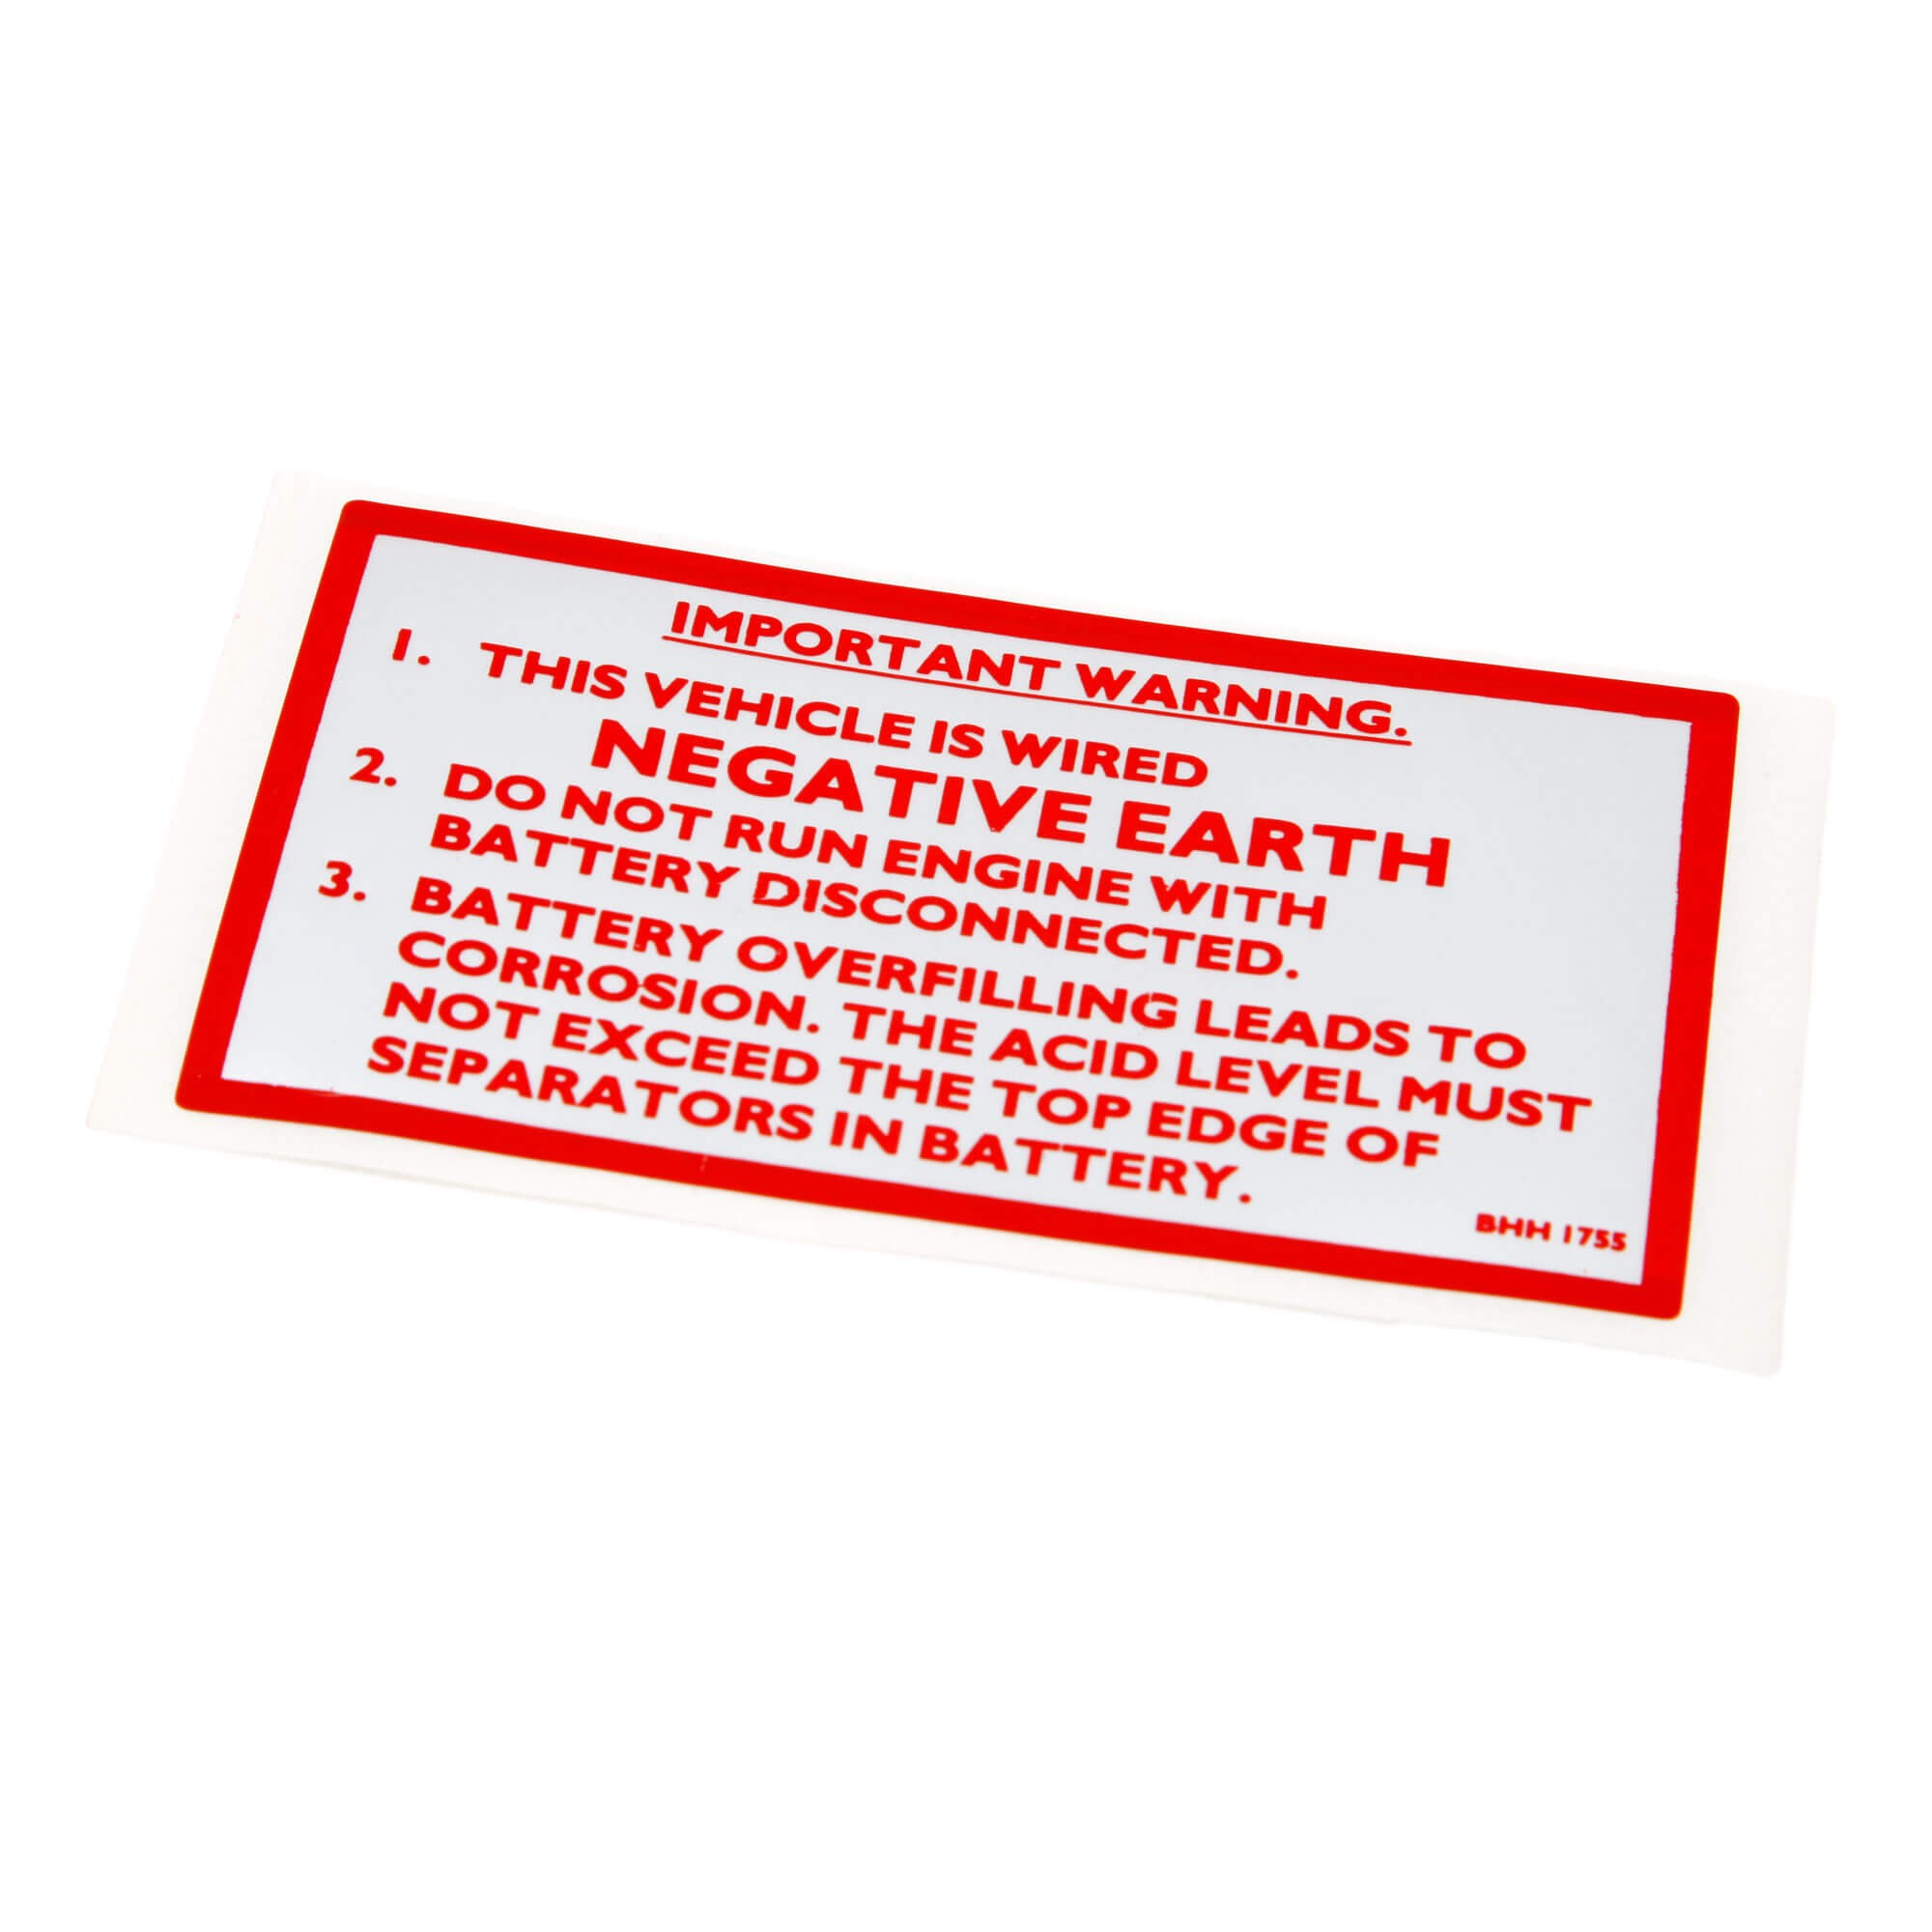 STICKER DECAL CLASSIC CAR warning wired negative earth LABEL